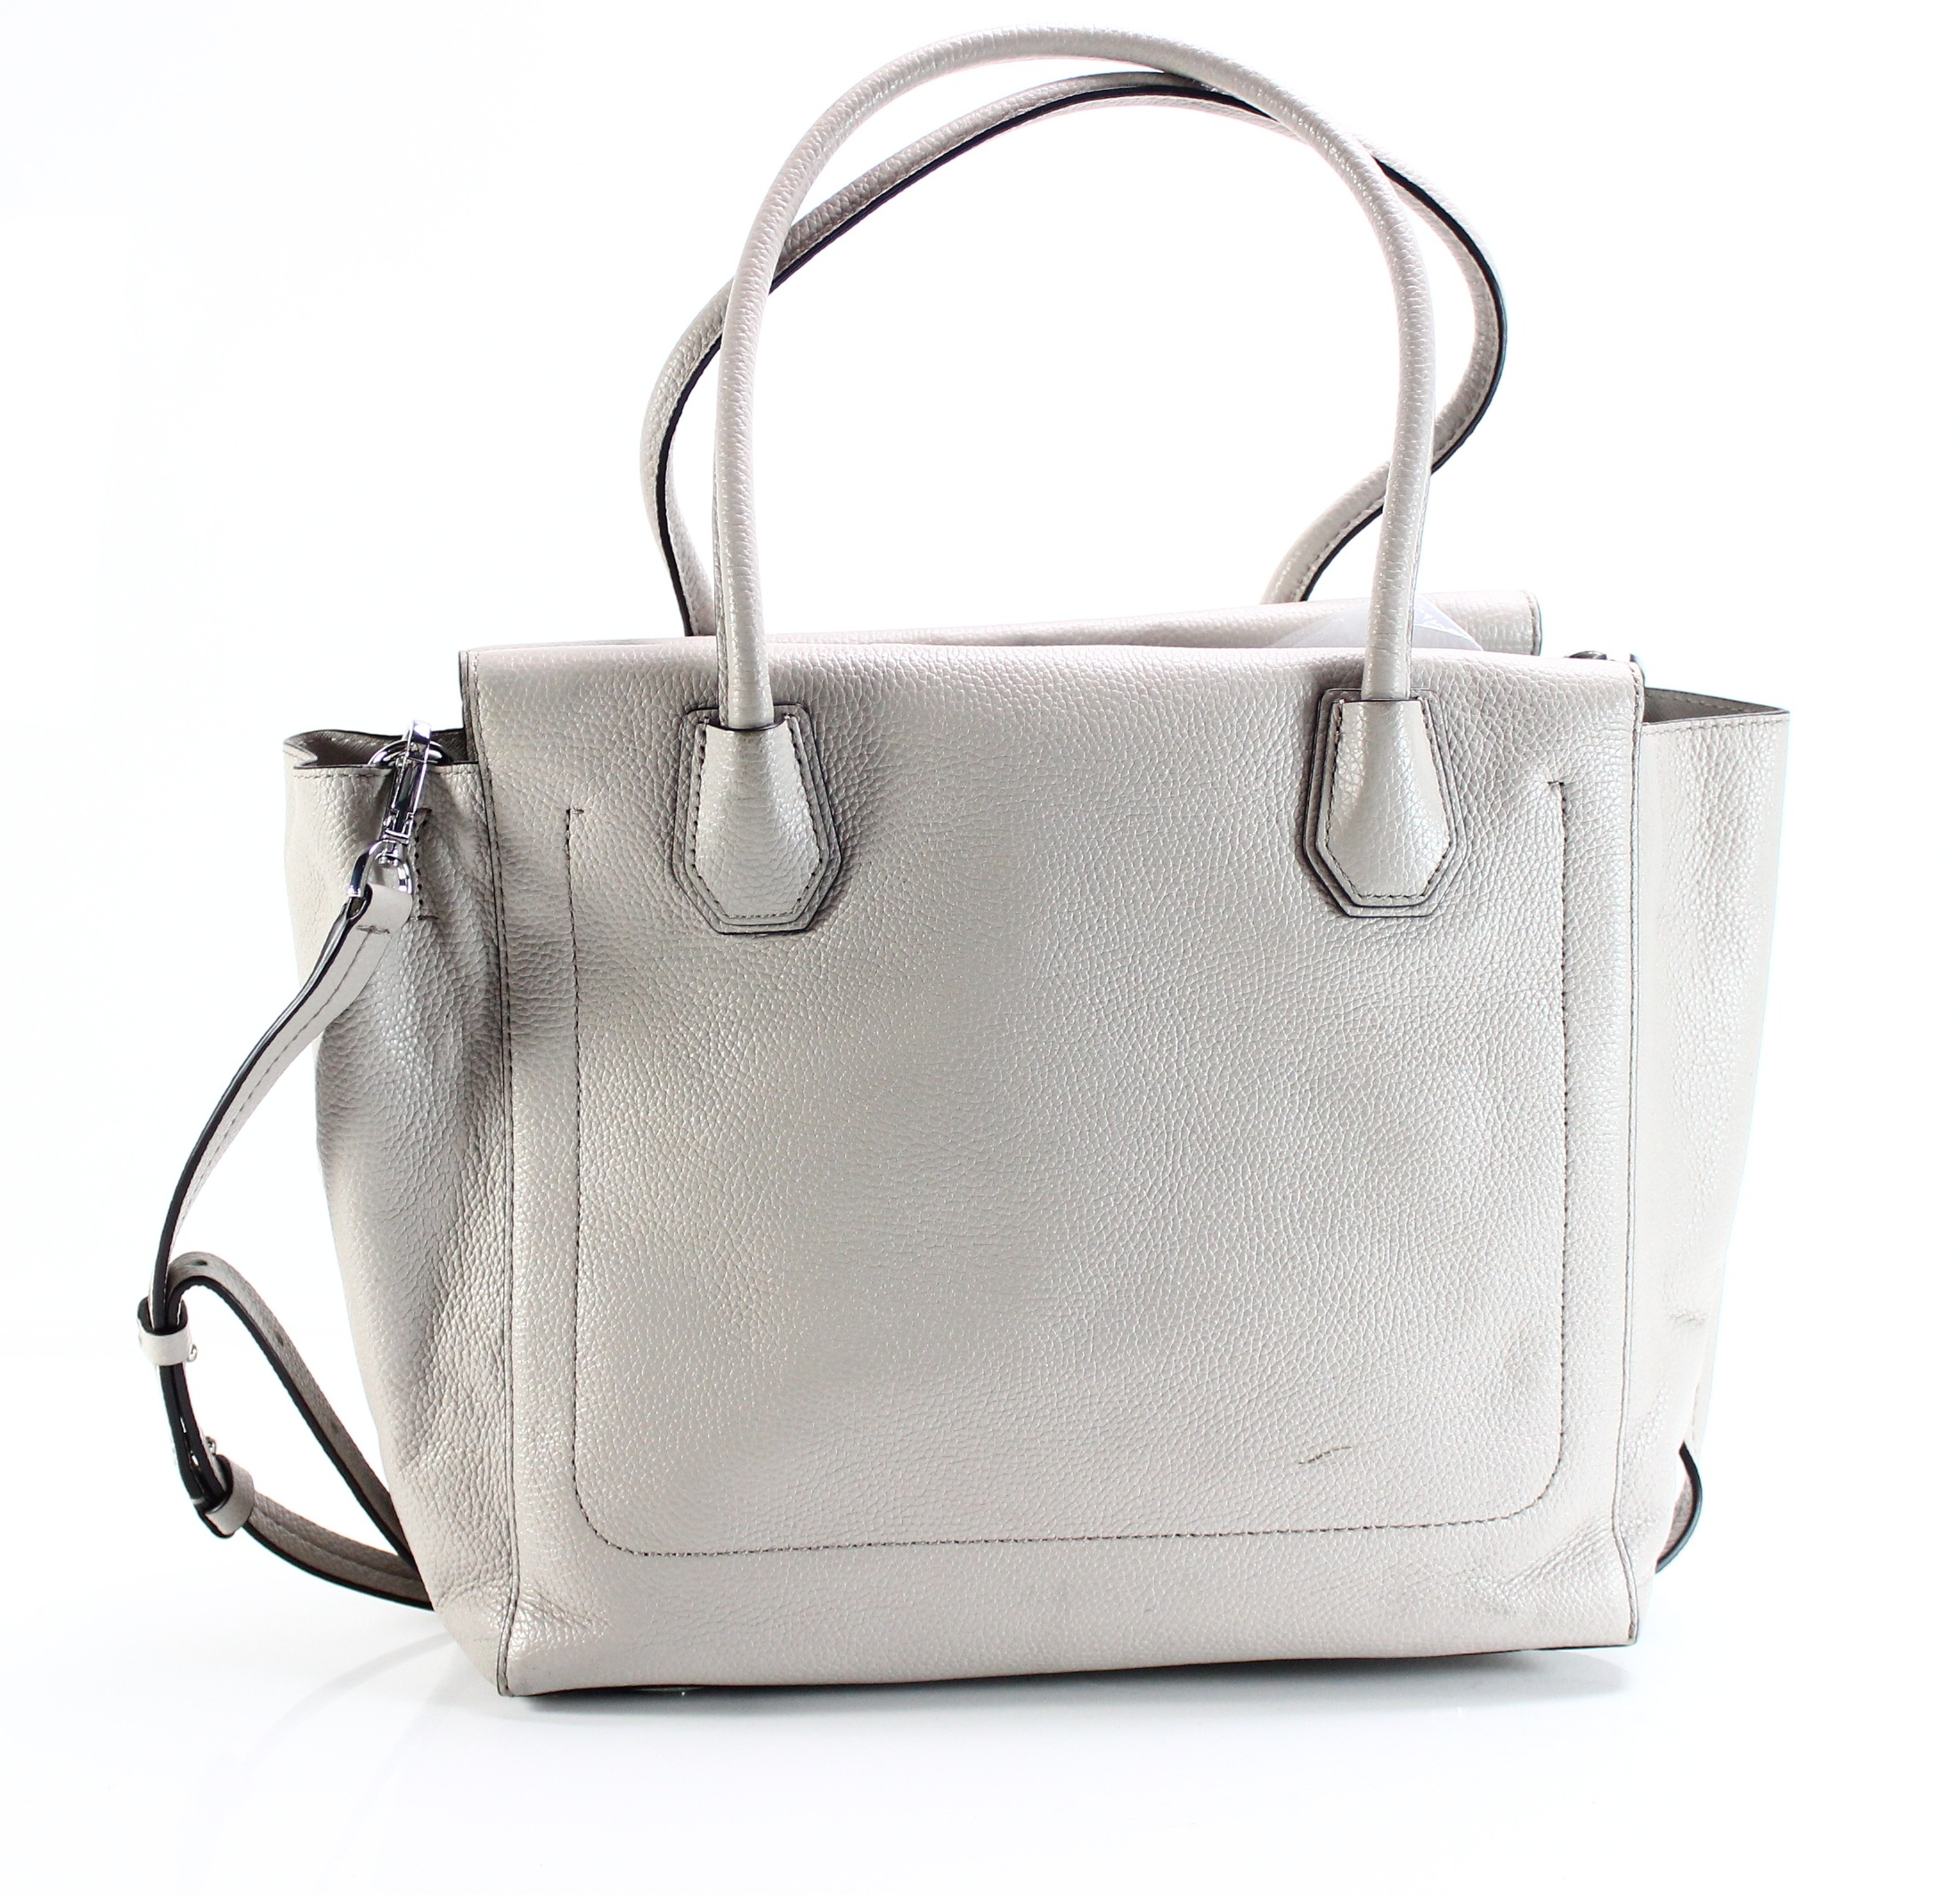 ecc7554c8f5c54 RETAIL PRICE $328.00 BEST PRICE GUARANTEED! Brand:Michael Kors Condition:New  with defects. Category:Handbags & Purses